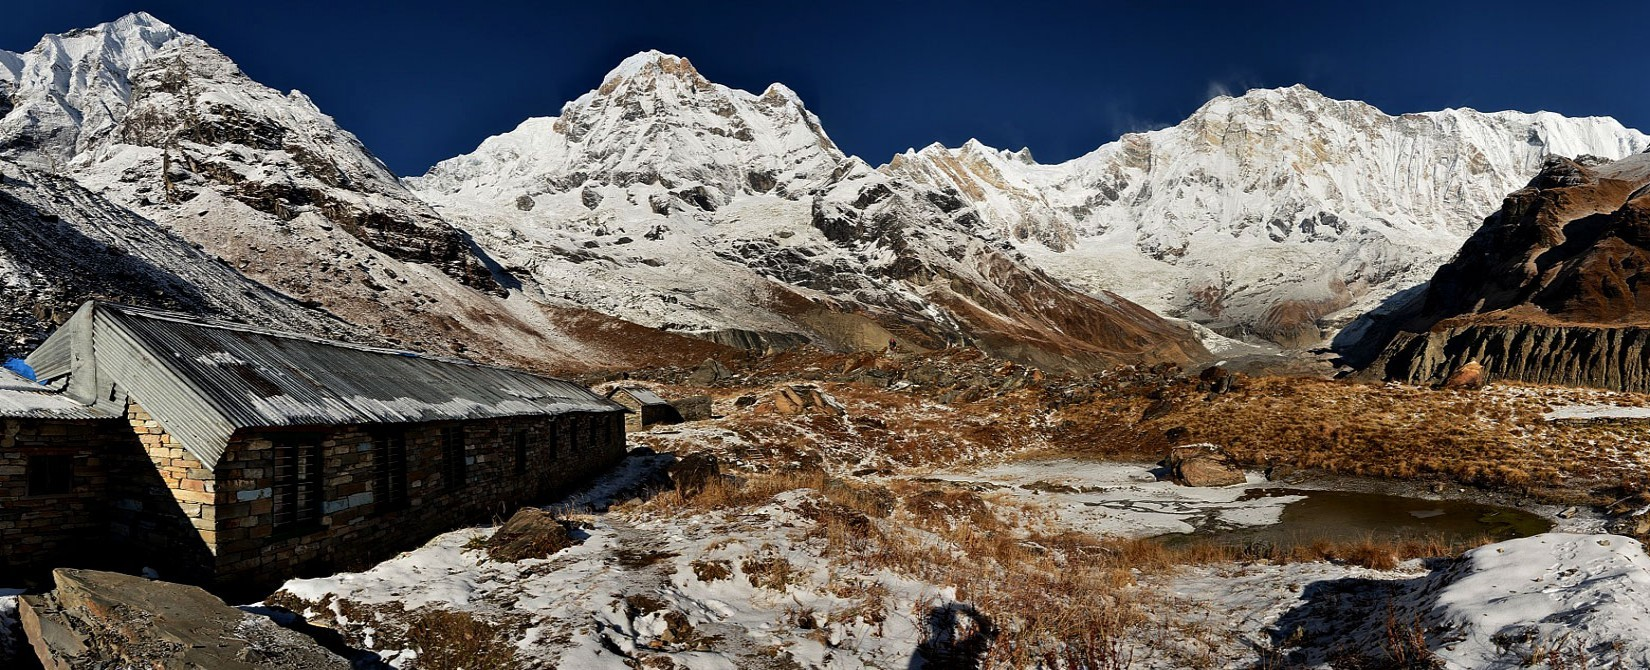 Annapurna Base Camp Panoramic view